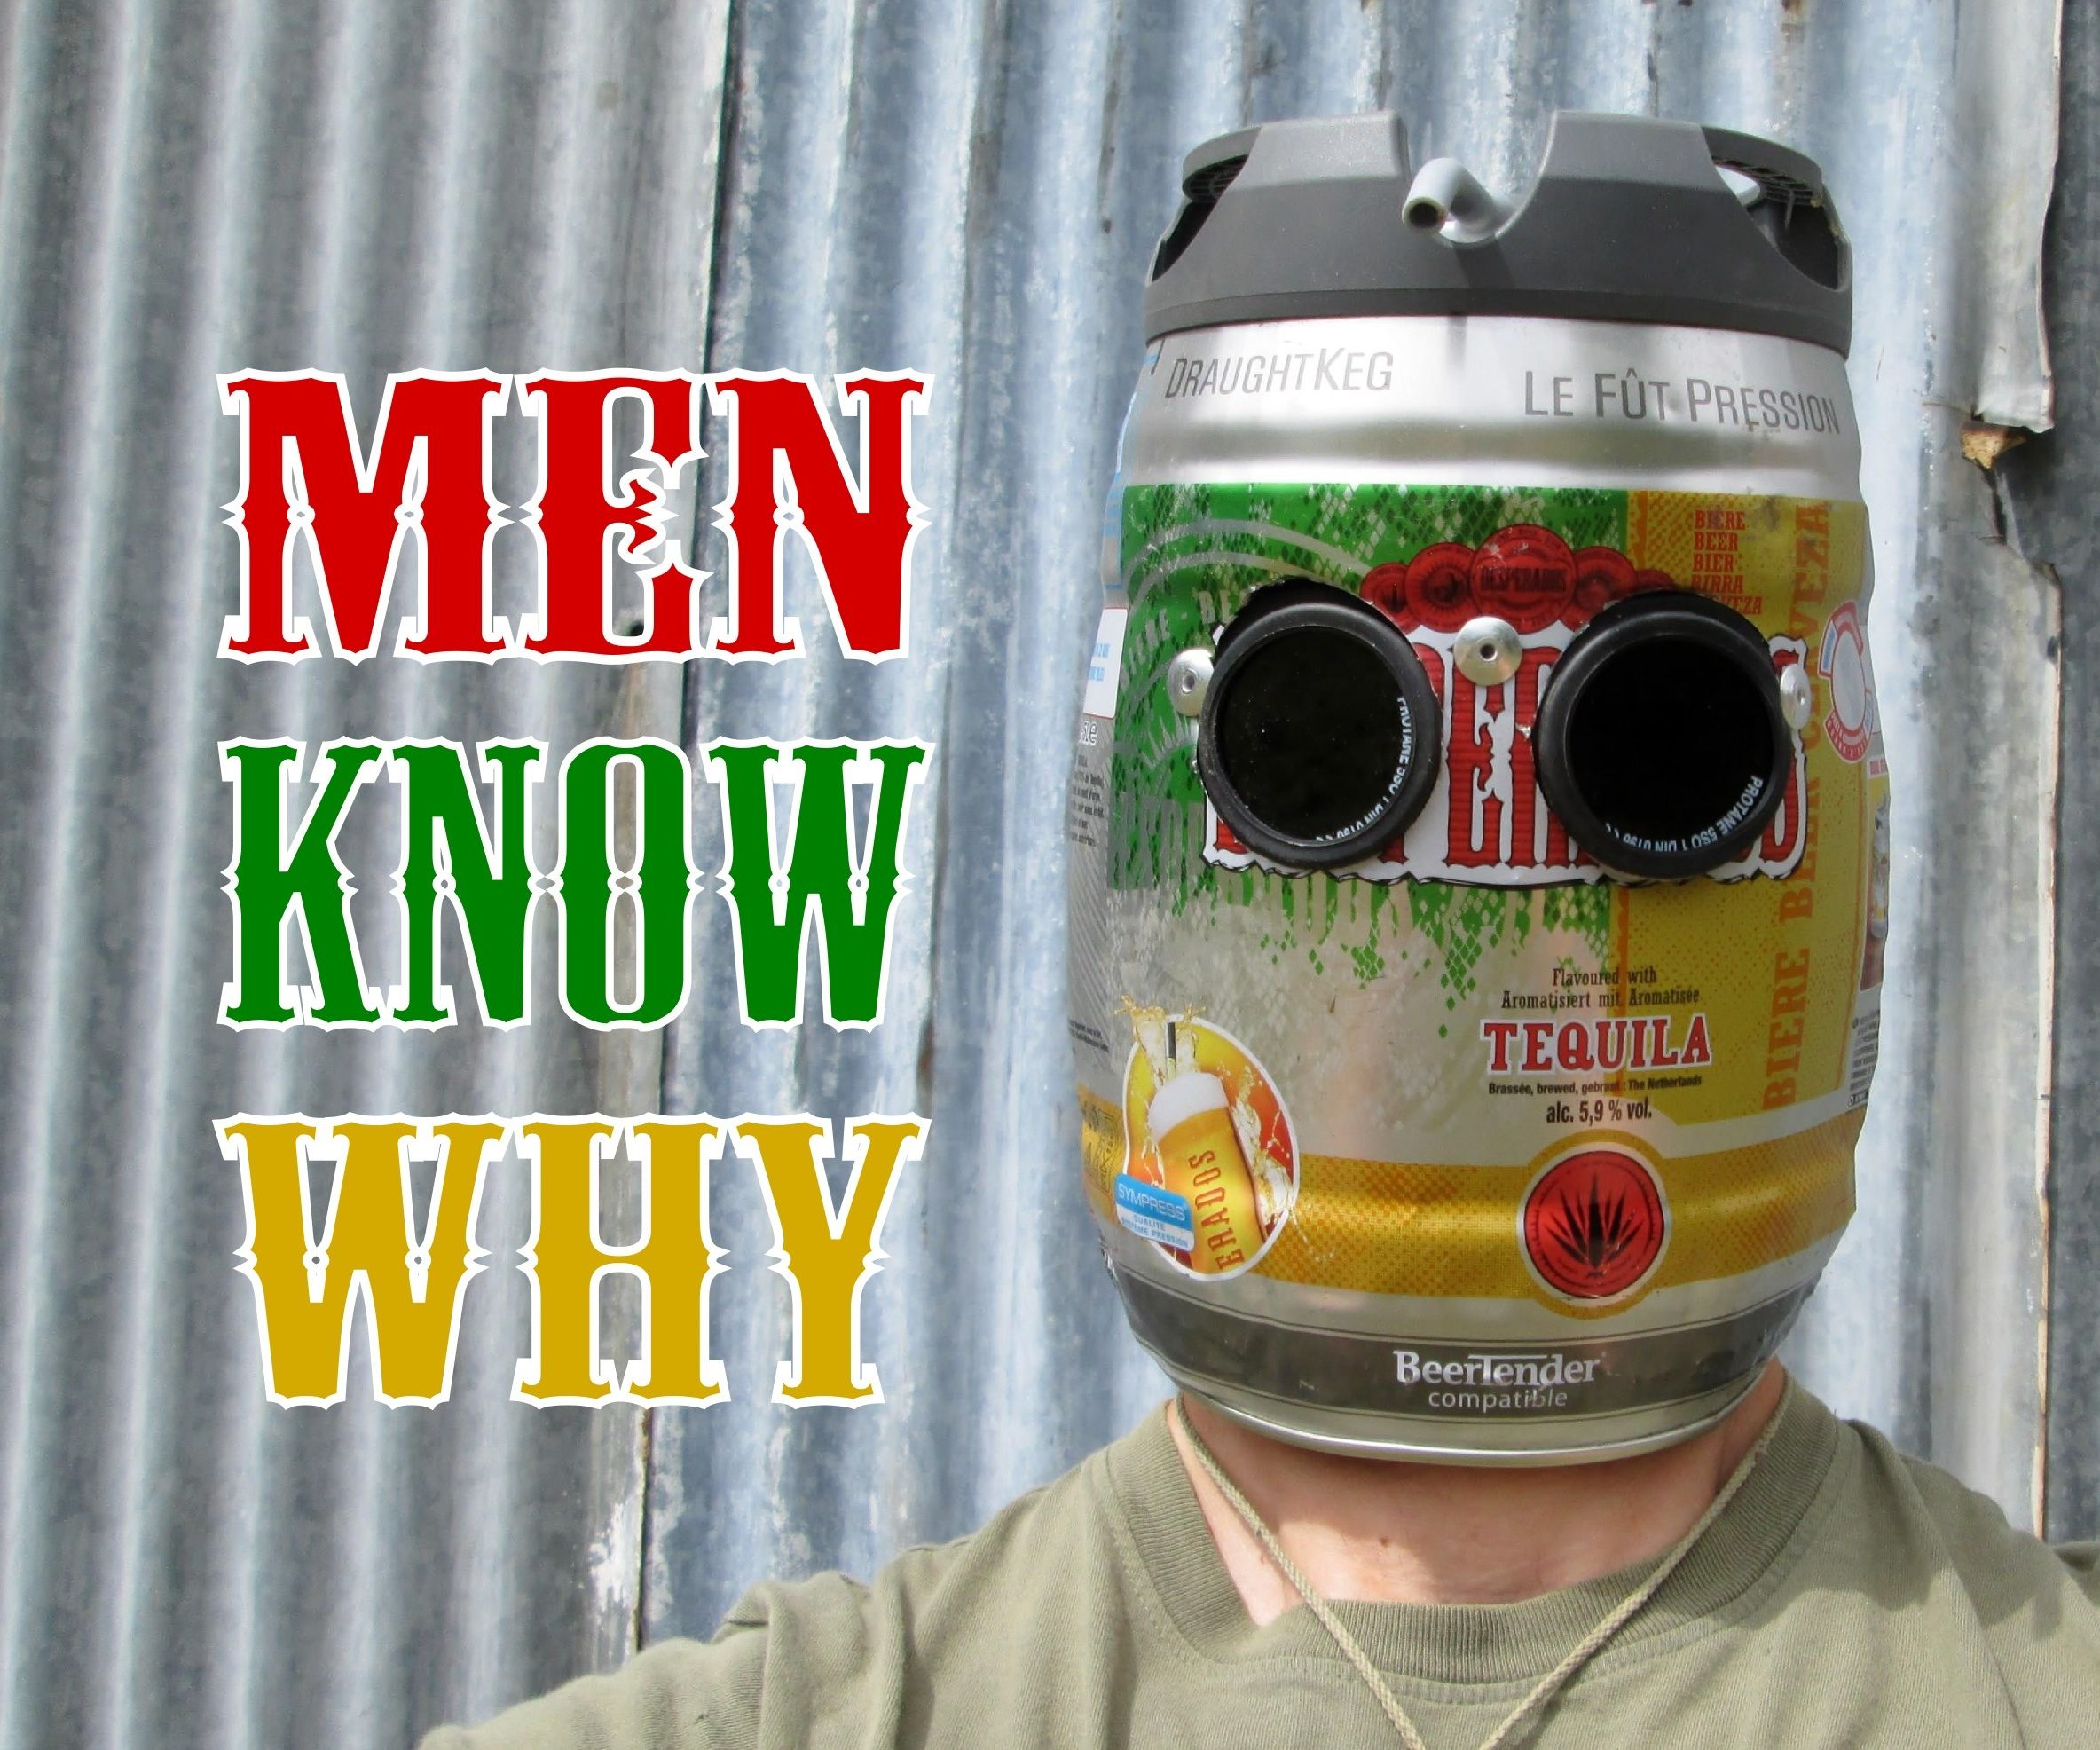 Very Manly Beer Keg Welding Helmet